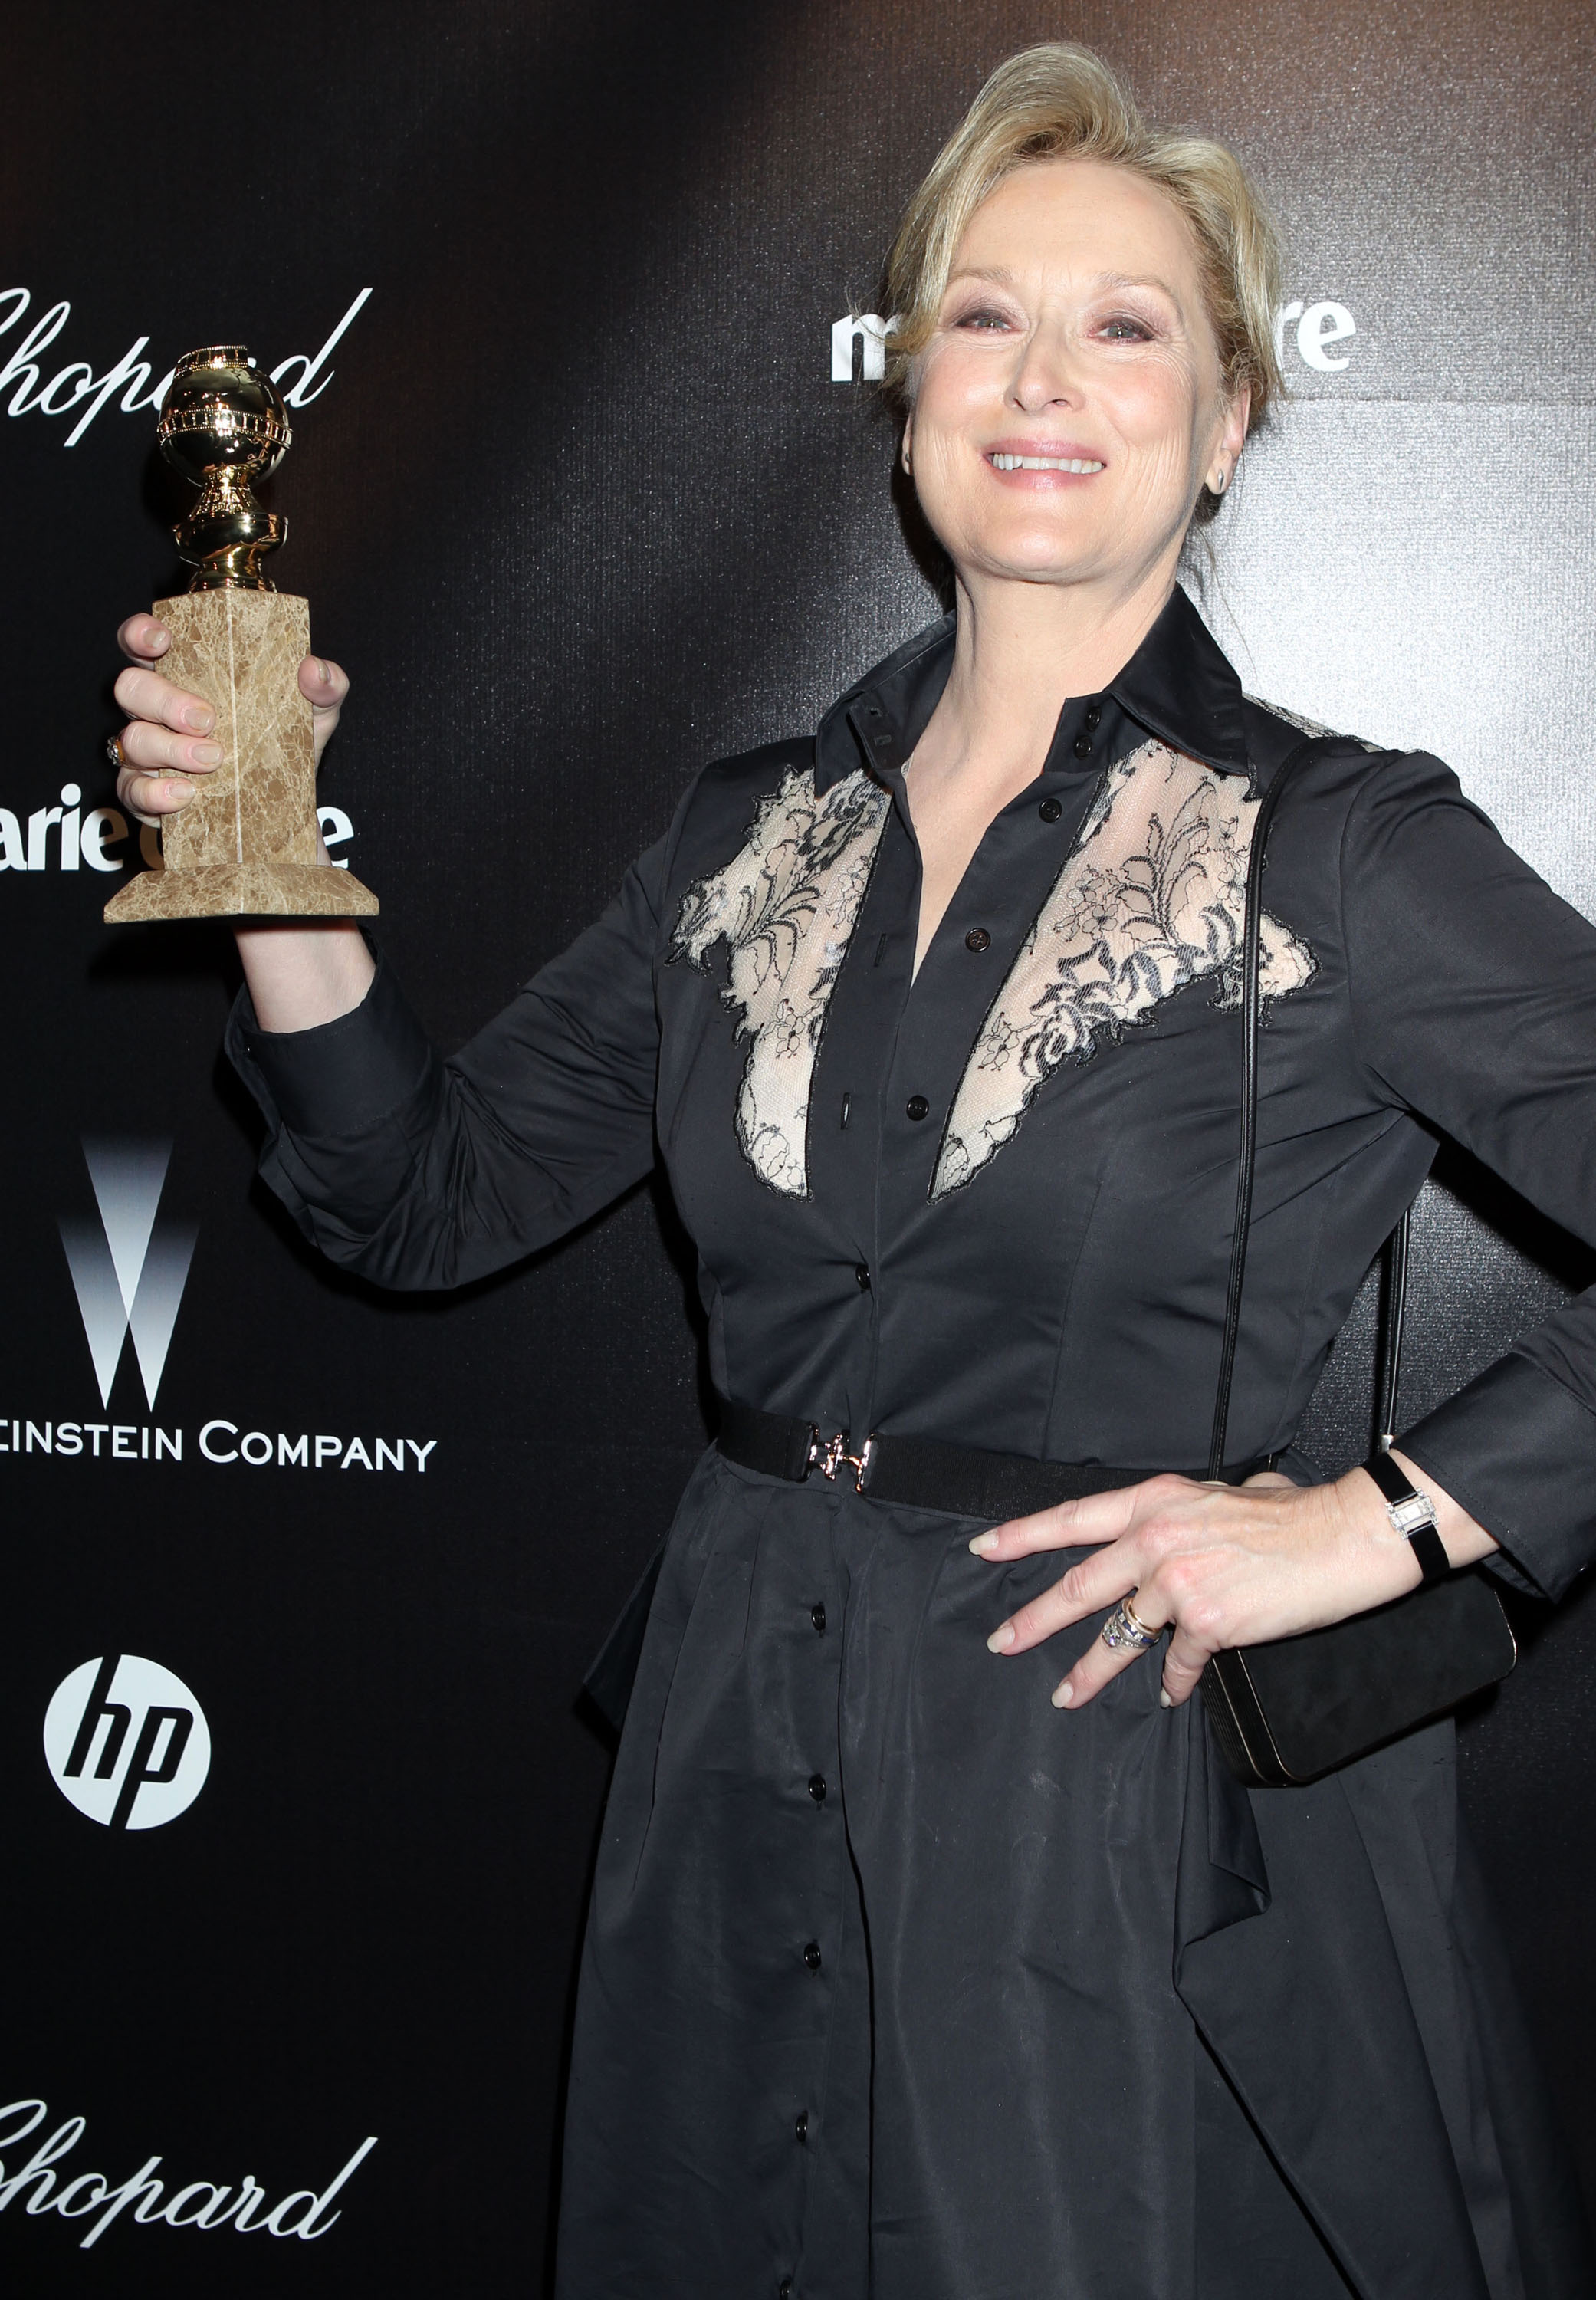 The Weinstein Company 2012 Golden Globe After Party